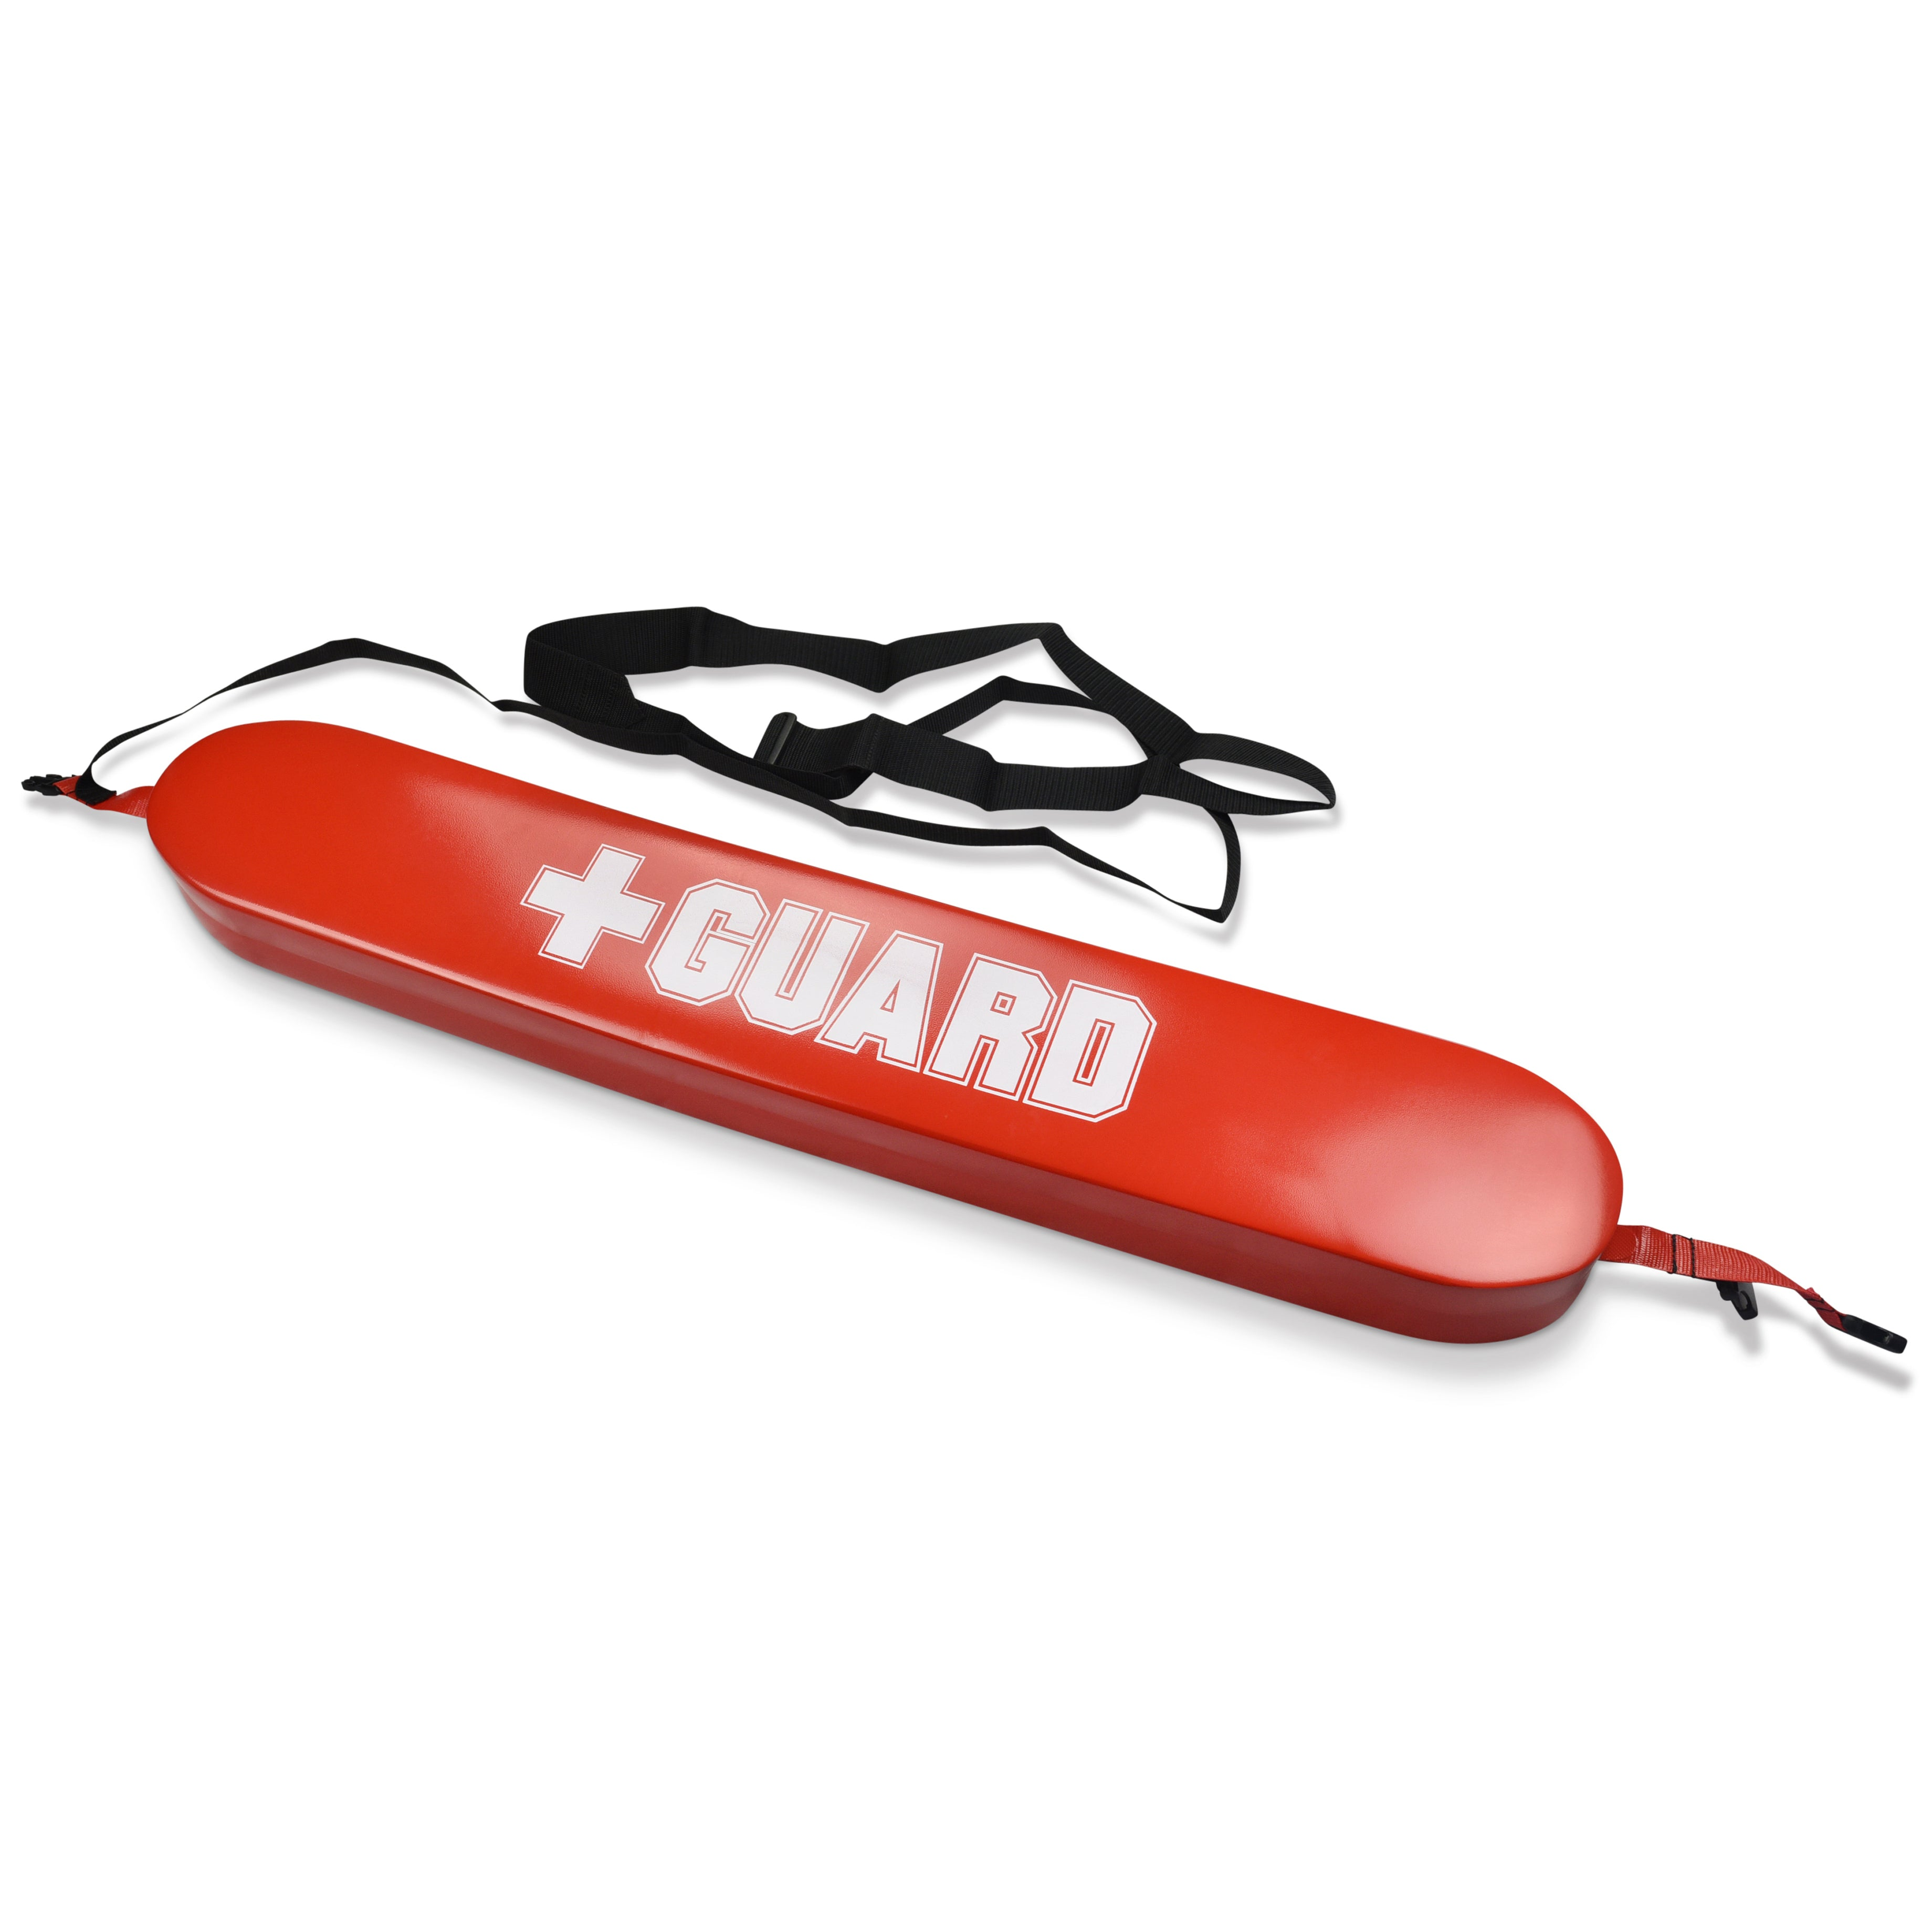 Lifeguard Rescue Tube - 40